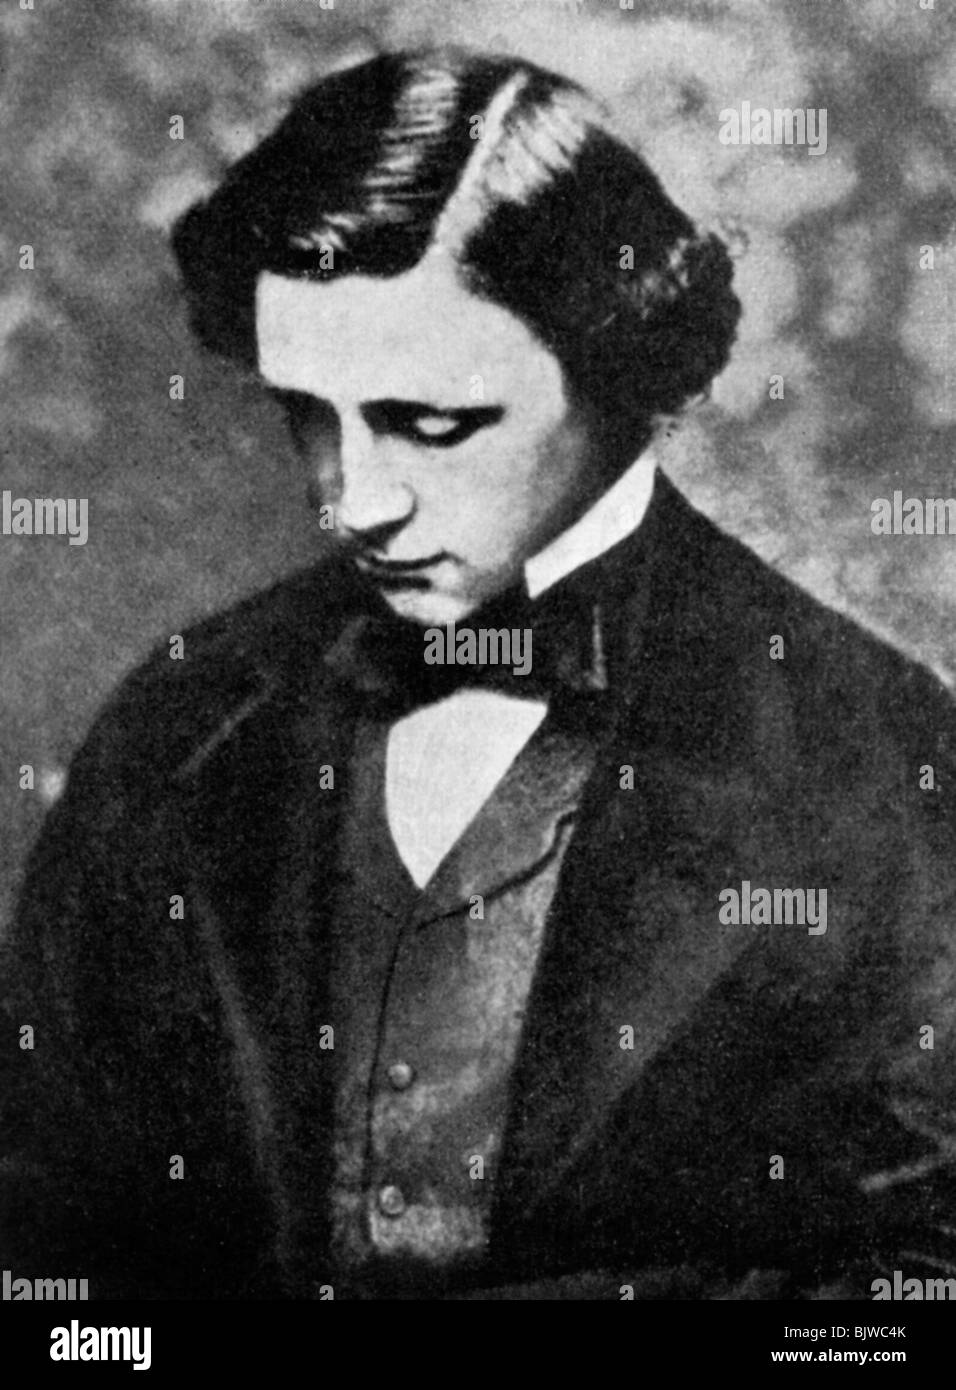 Lewis Carroll, English author, 19th century (1951). - Stock Image